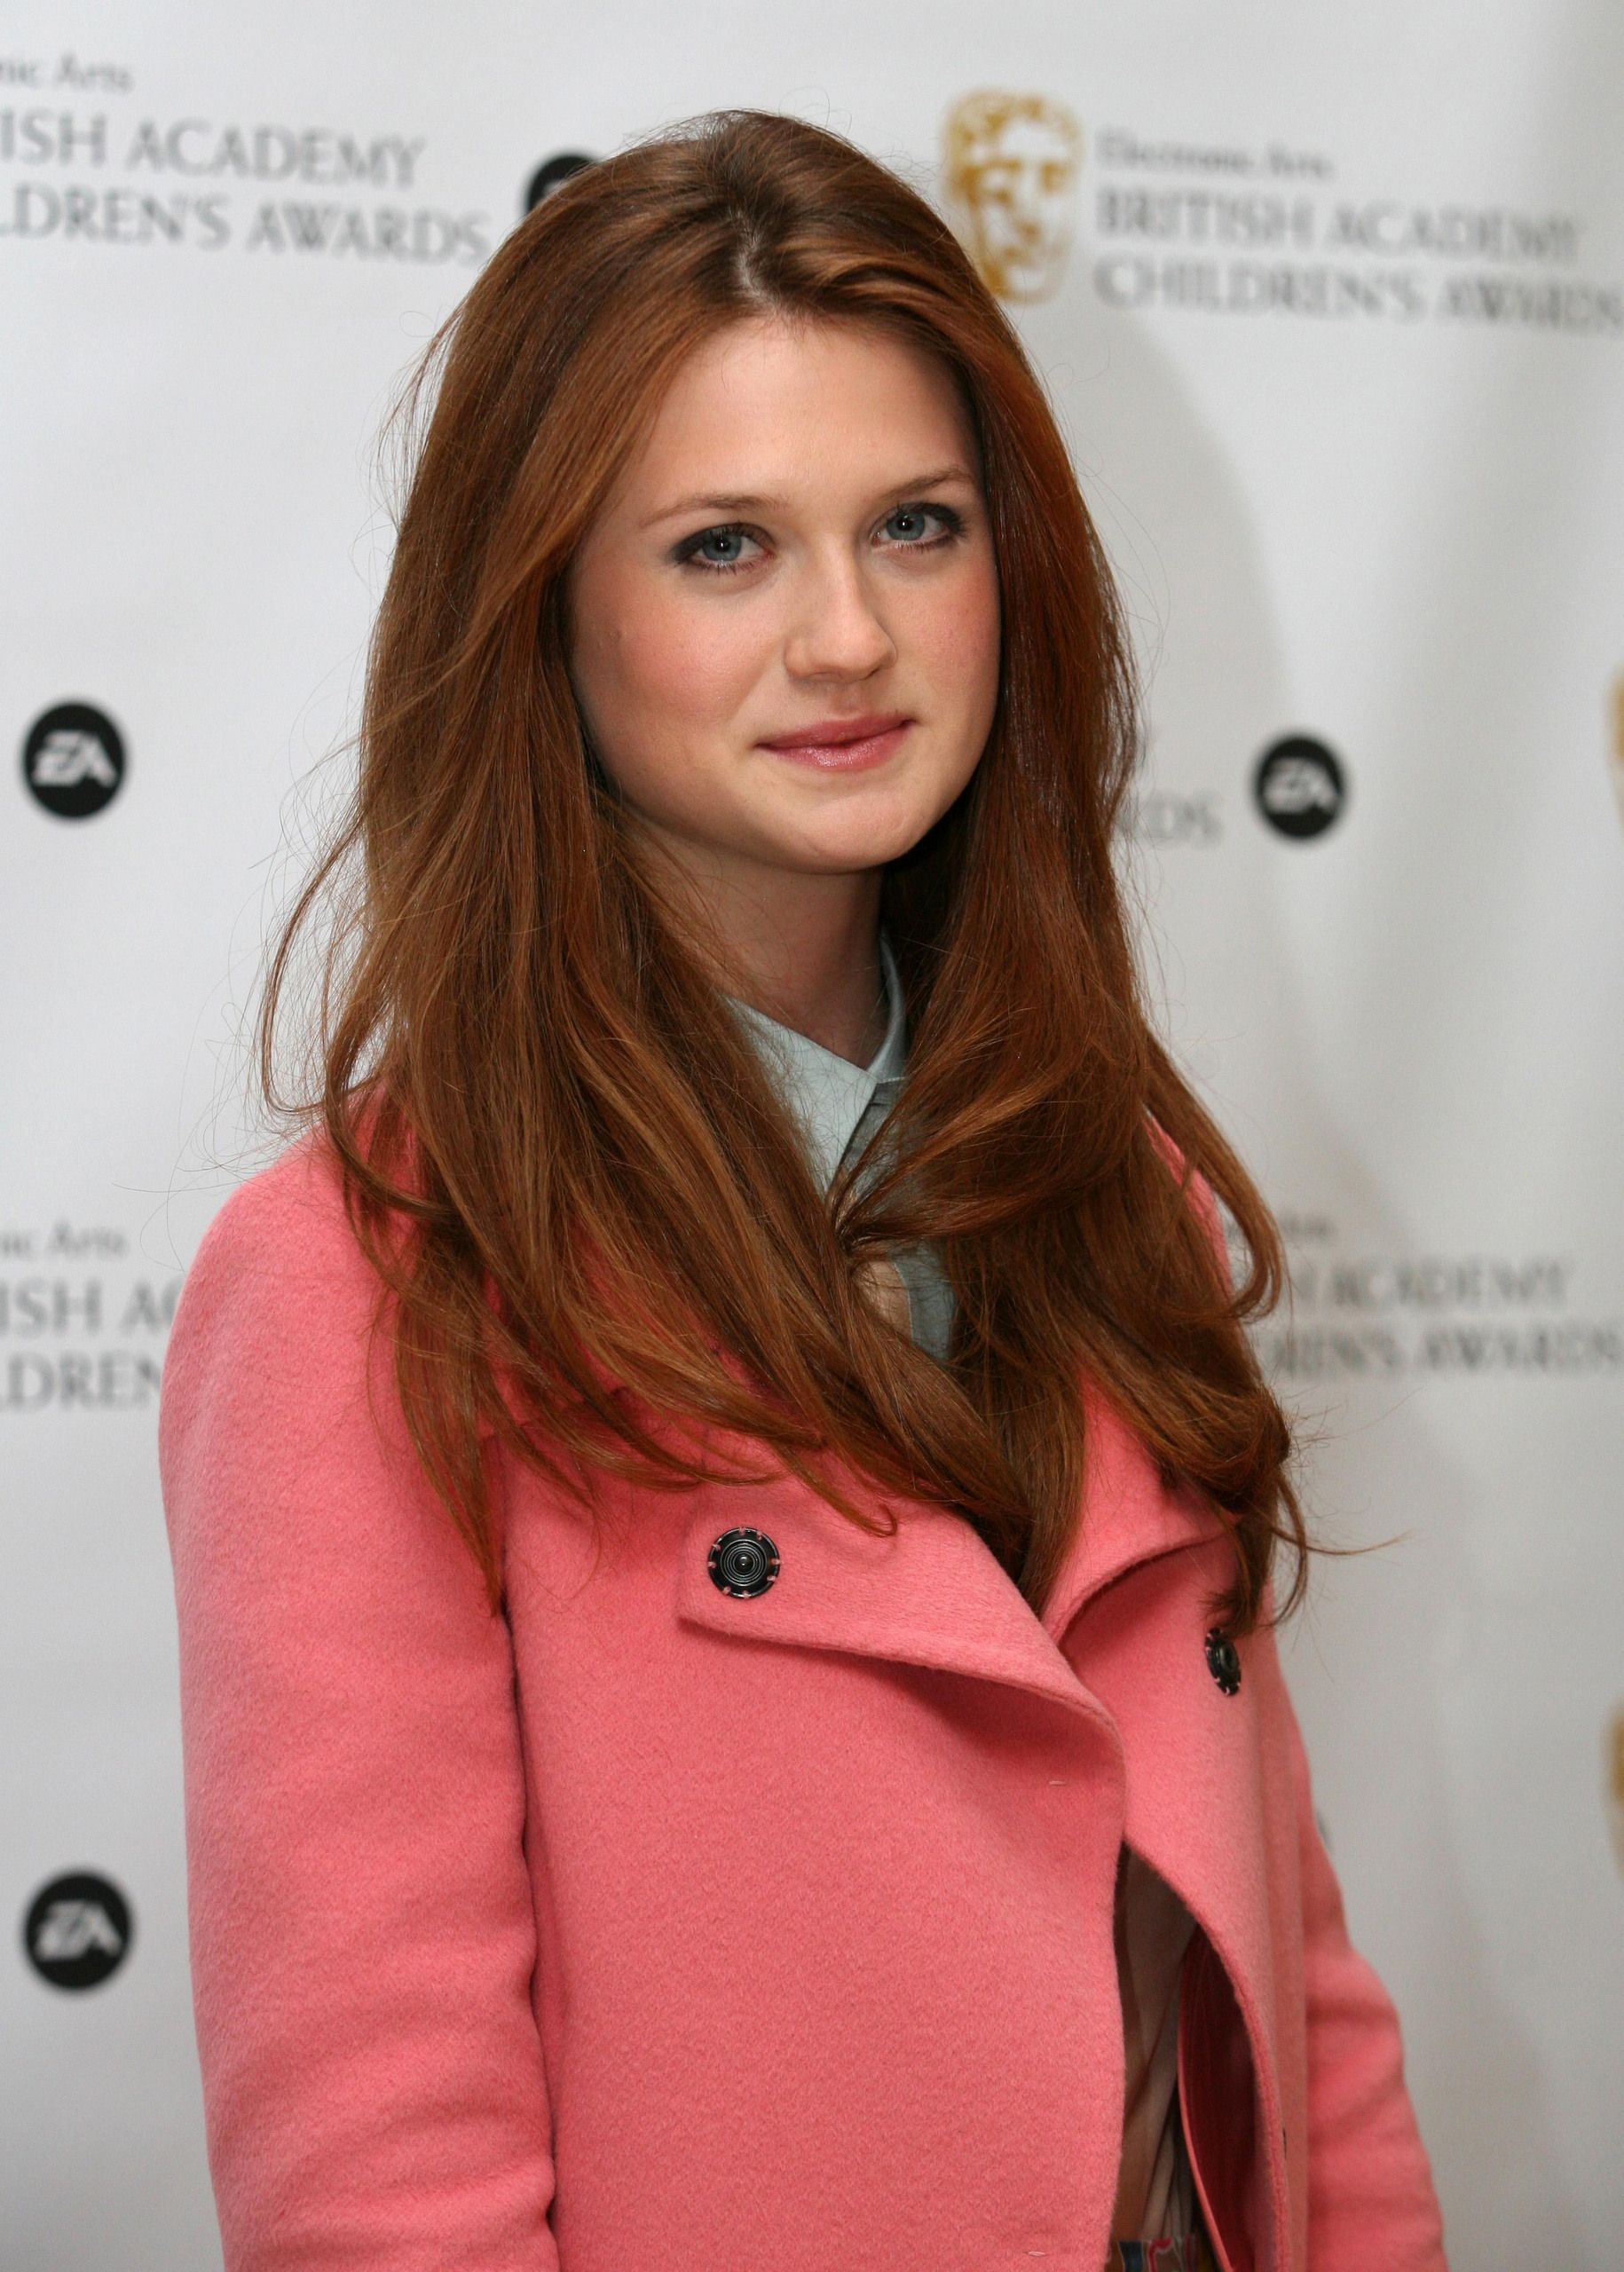 bonnie wright tumblrbonnie wright 2016, bonnie wright 2017, bonnie wright tumblr, bonnie wright gif, bonnie wright and jamie campbell bower, bonnie wright films, bonnie wright boyfriend, bonnie wright movies, bonnie wright wikipedia, bonnie wright insta, bonnie wright simon hammerstein, bonnie wright fb, bonnie wright wdw, bonnie wright email, bonnie wright 2017 instagram, bonnie wright soles, bonnie wright haircut, bonnie wright happy birthday, bonnie wright instagram official, bonnie wright vegan